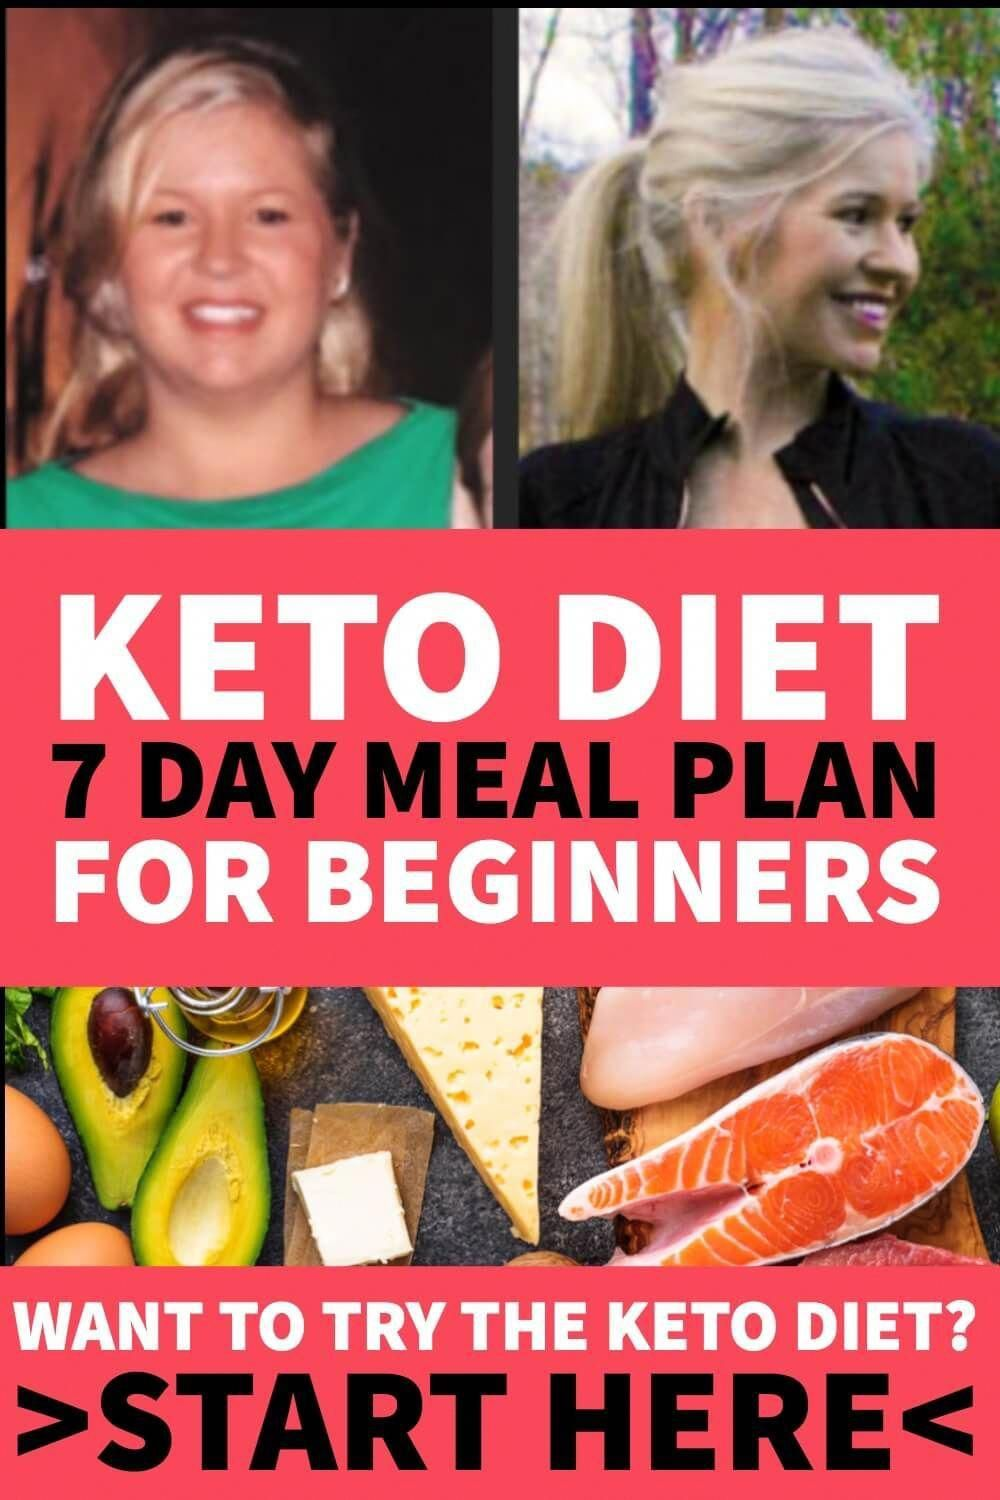 The Hungry Girl's Guide to Keto: Ketogenic Diet for Beginners + 7 Day Meal Plan,  #Beginners #Day #Diet #Girls #Guide #Hungry #Keto #Ketogenic #KetogenicDiettips #Meal #Plan #BestDietMealPlanToLoseWeightFast